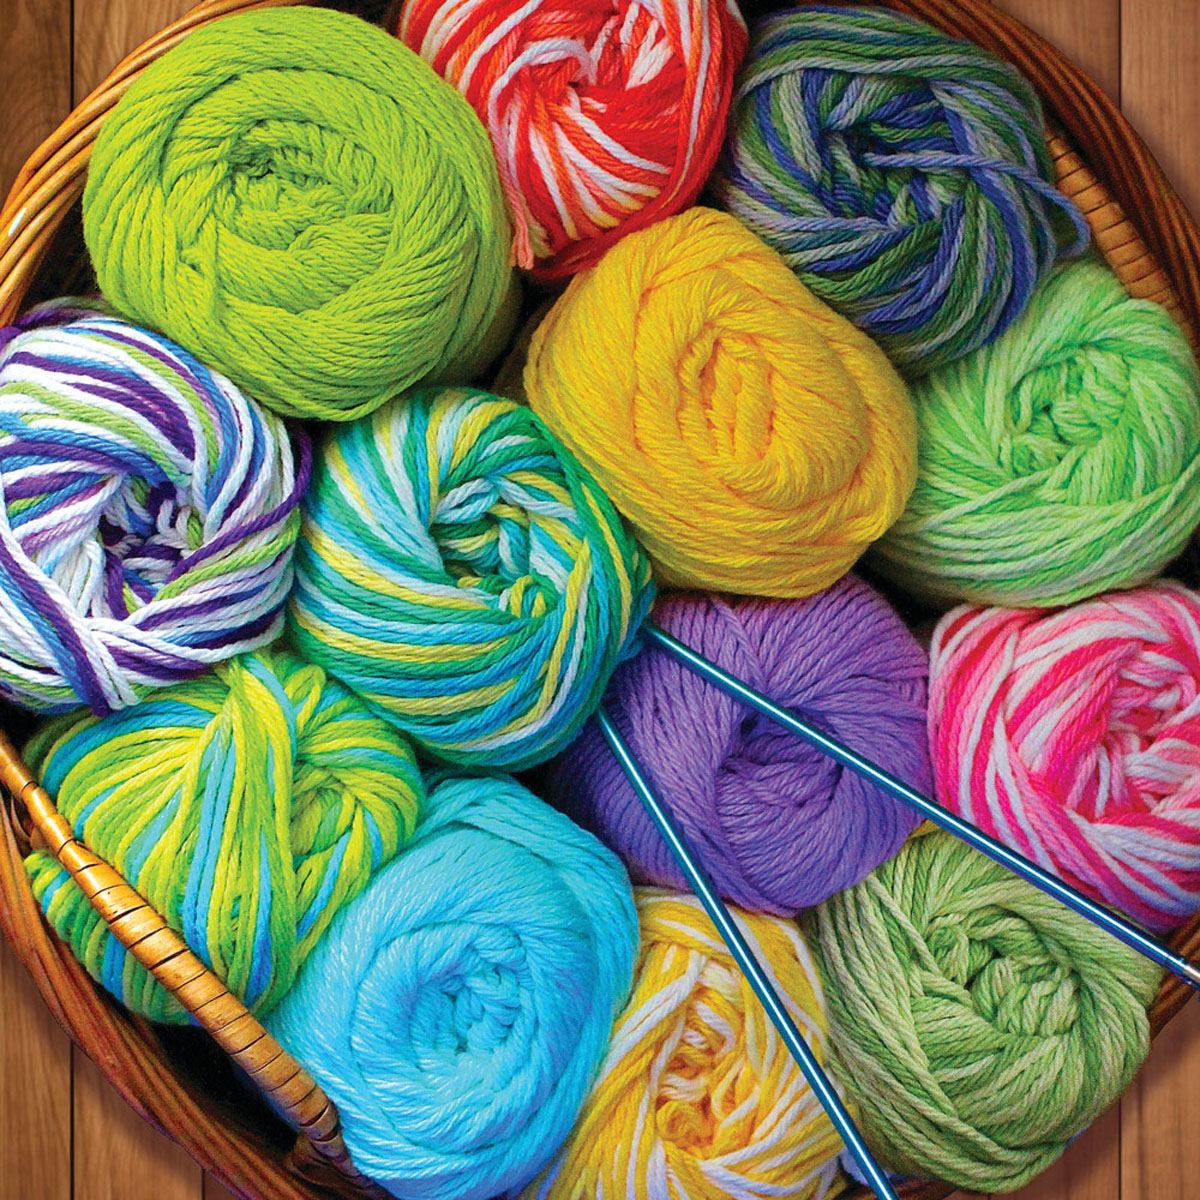 Colorful Yarn Crafts & Textile Arts Jigsaw Puzzle